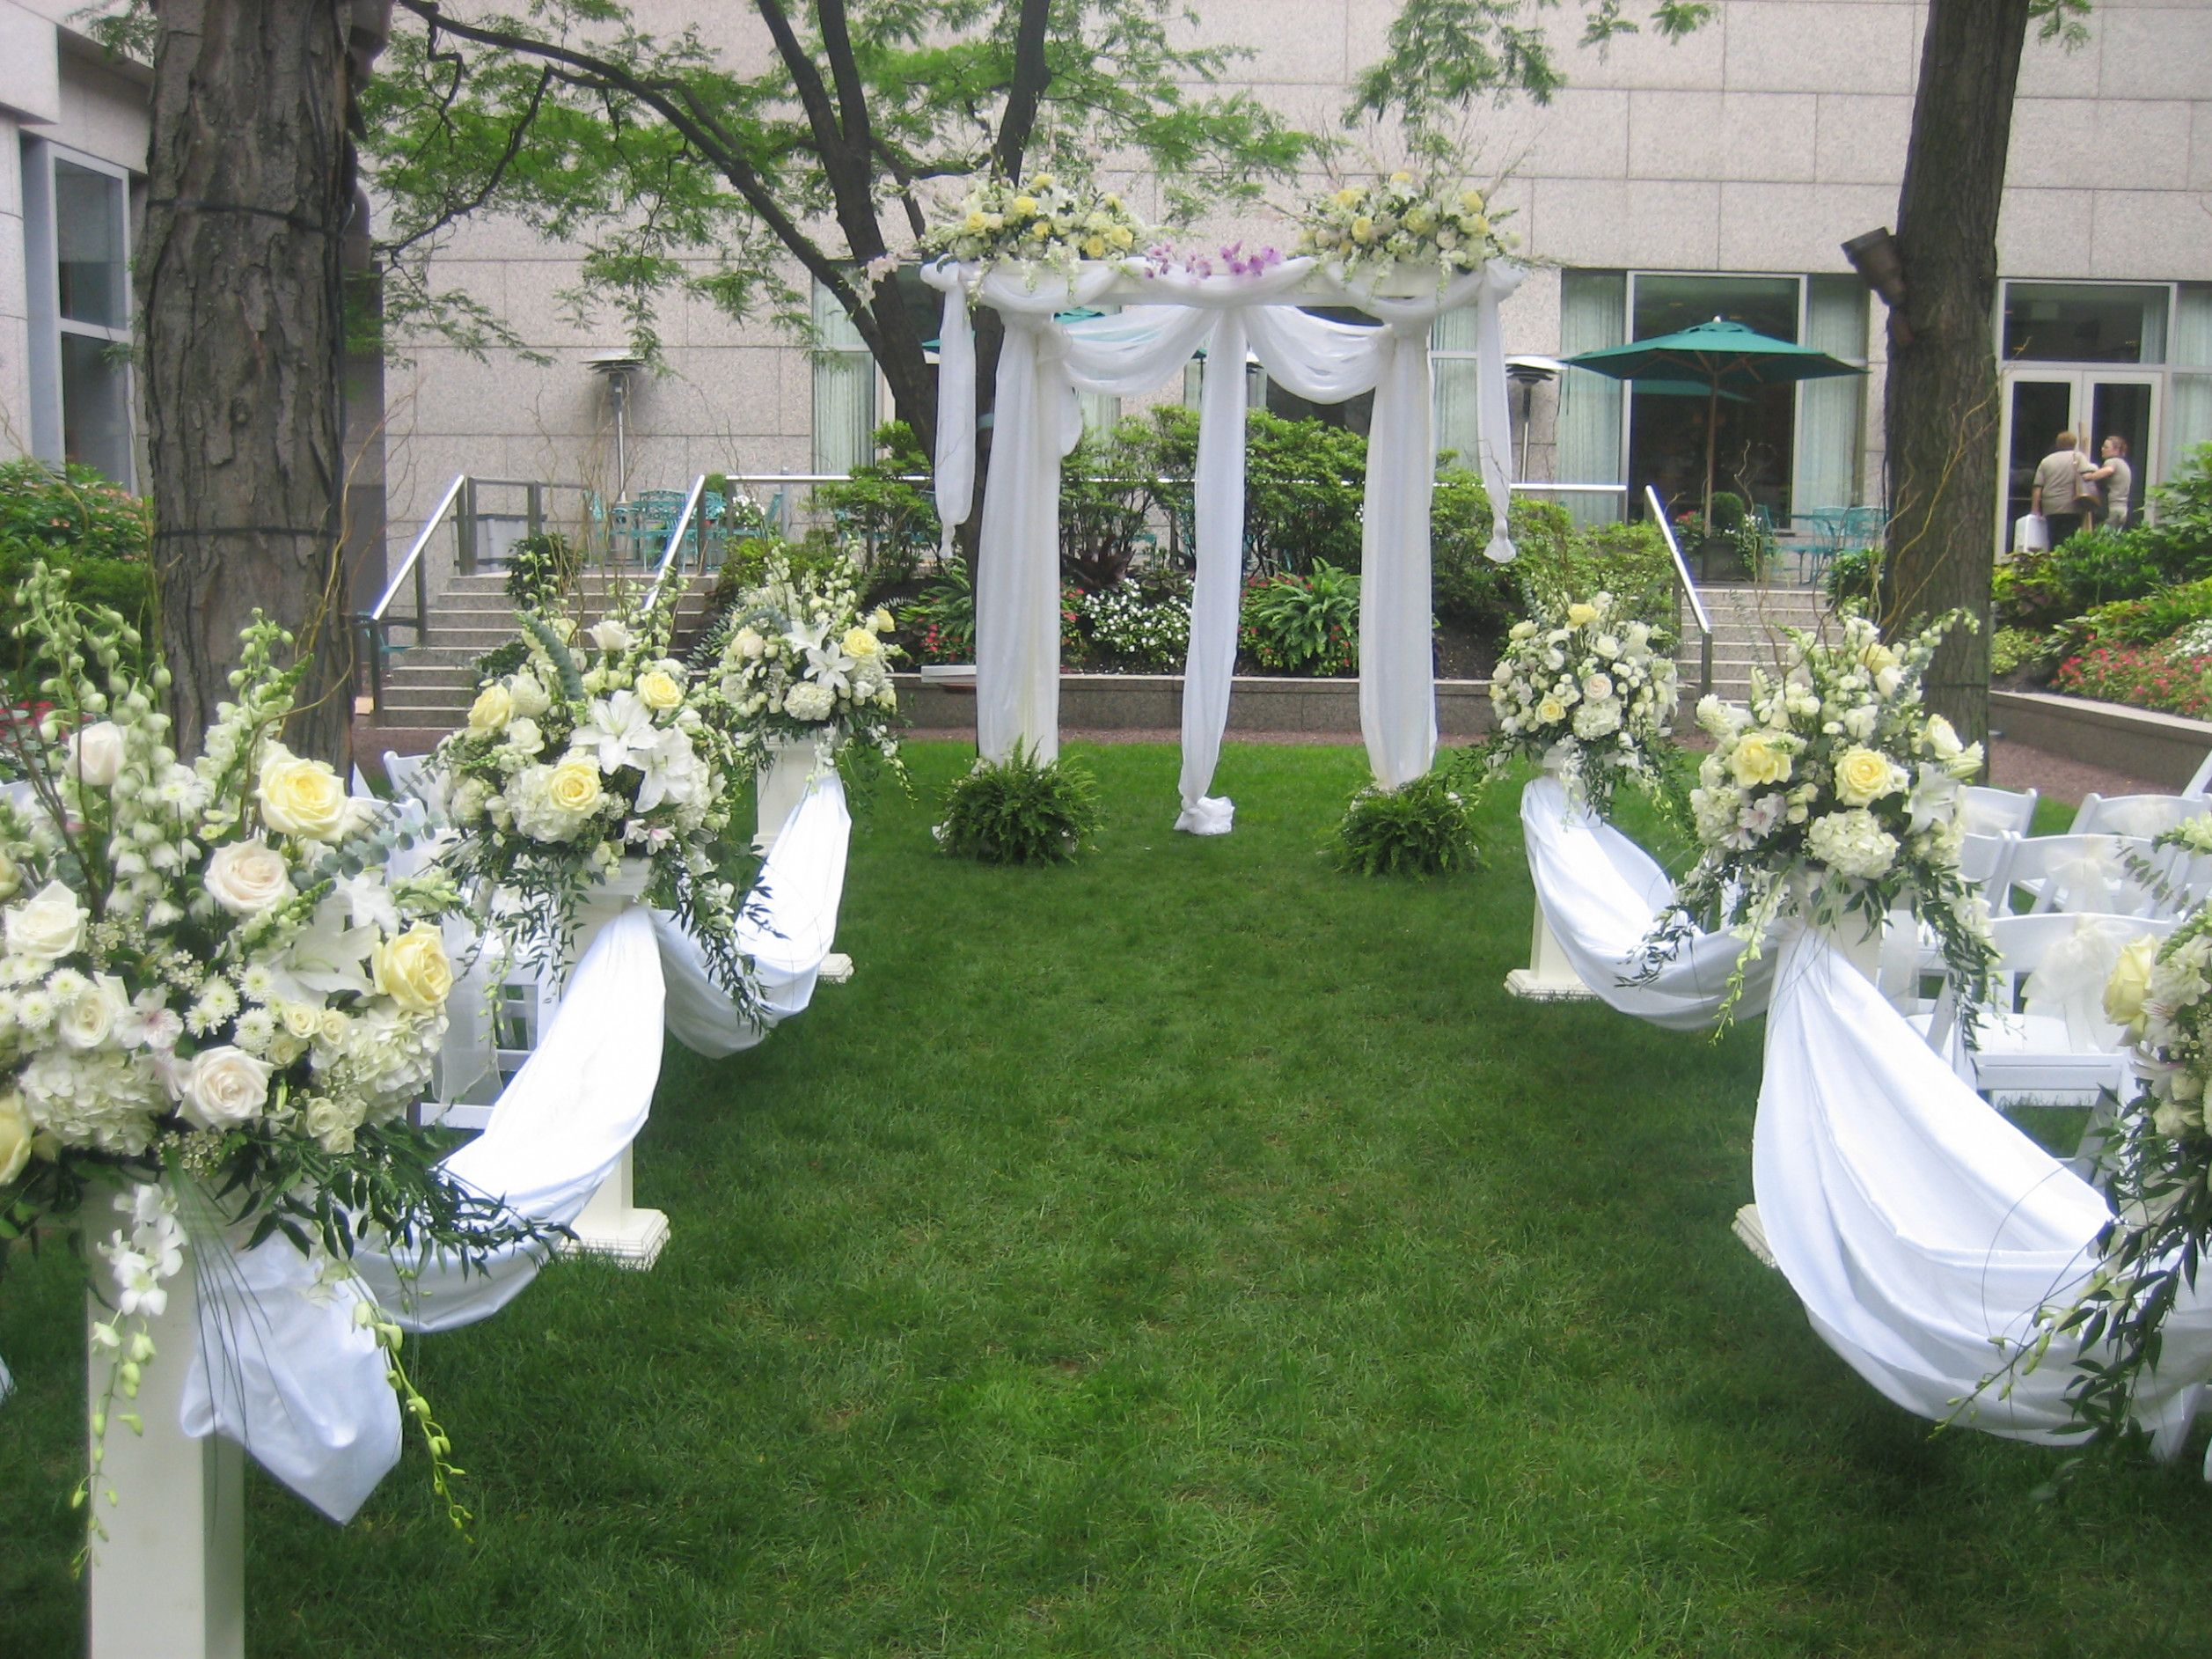 Outdoor garden wedding decoration ideas  Creative of Outdoor Wedding Ceremony Ideas Charming Small Backyard